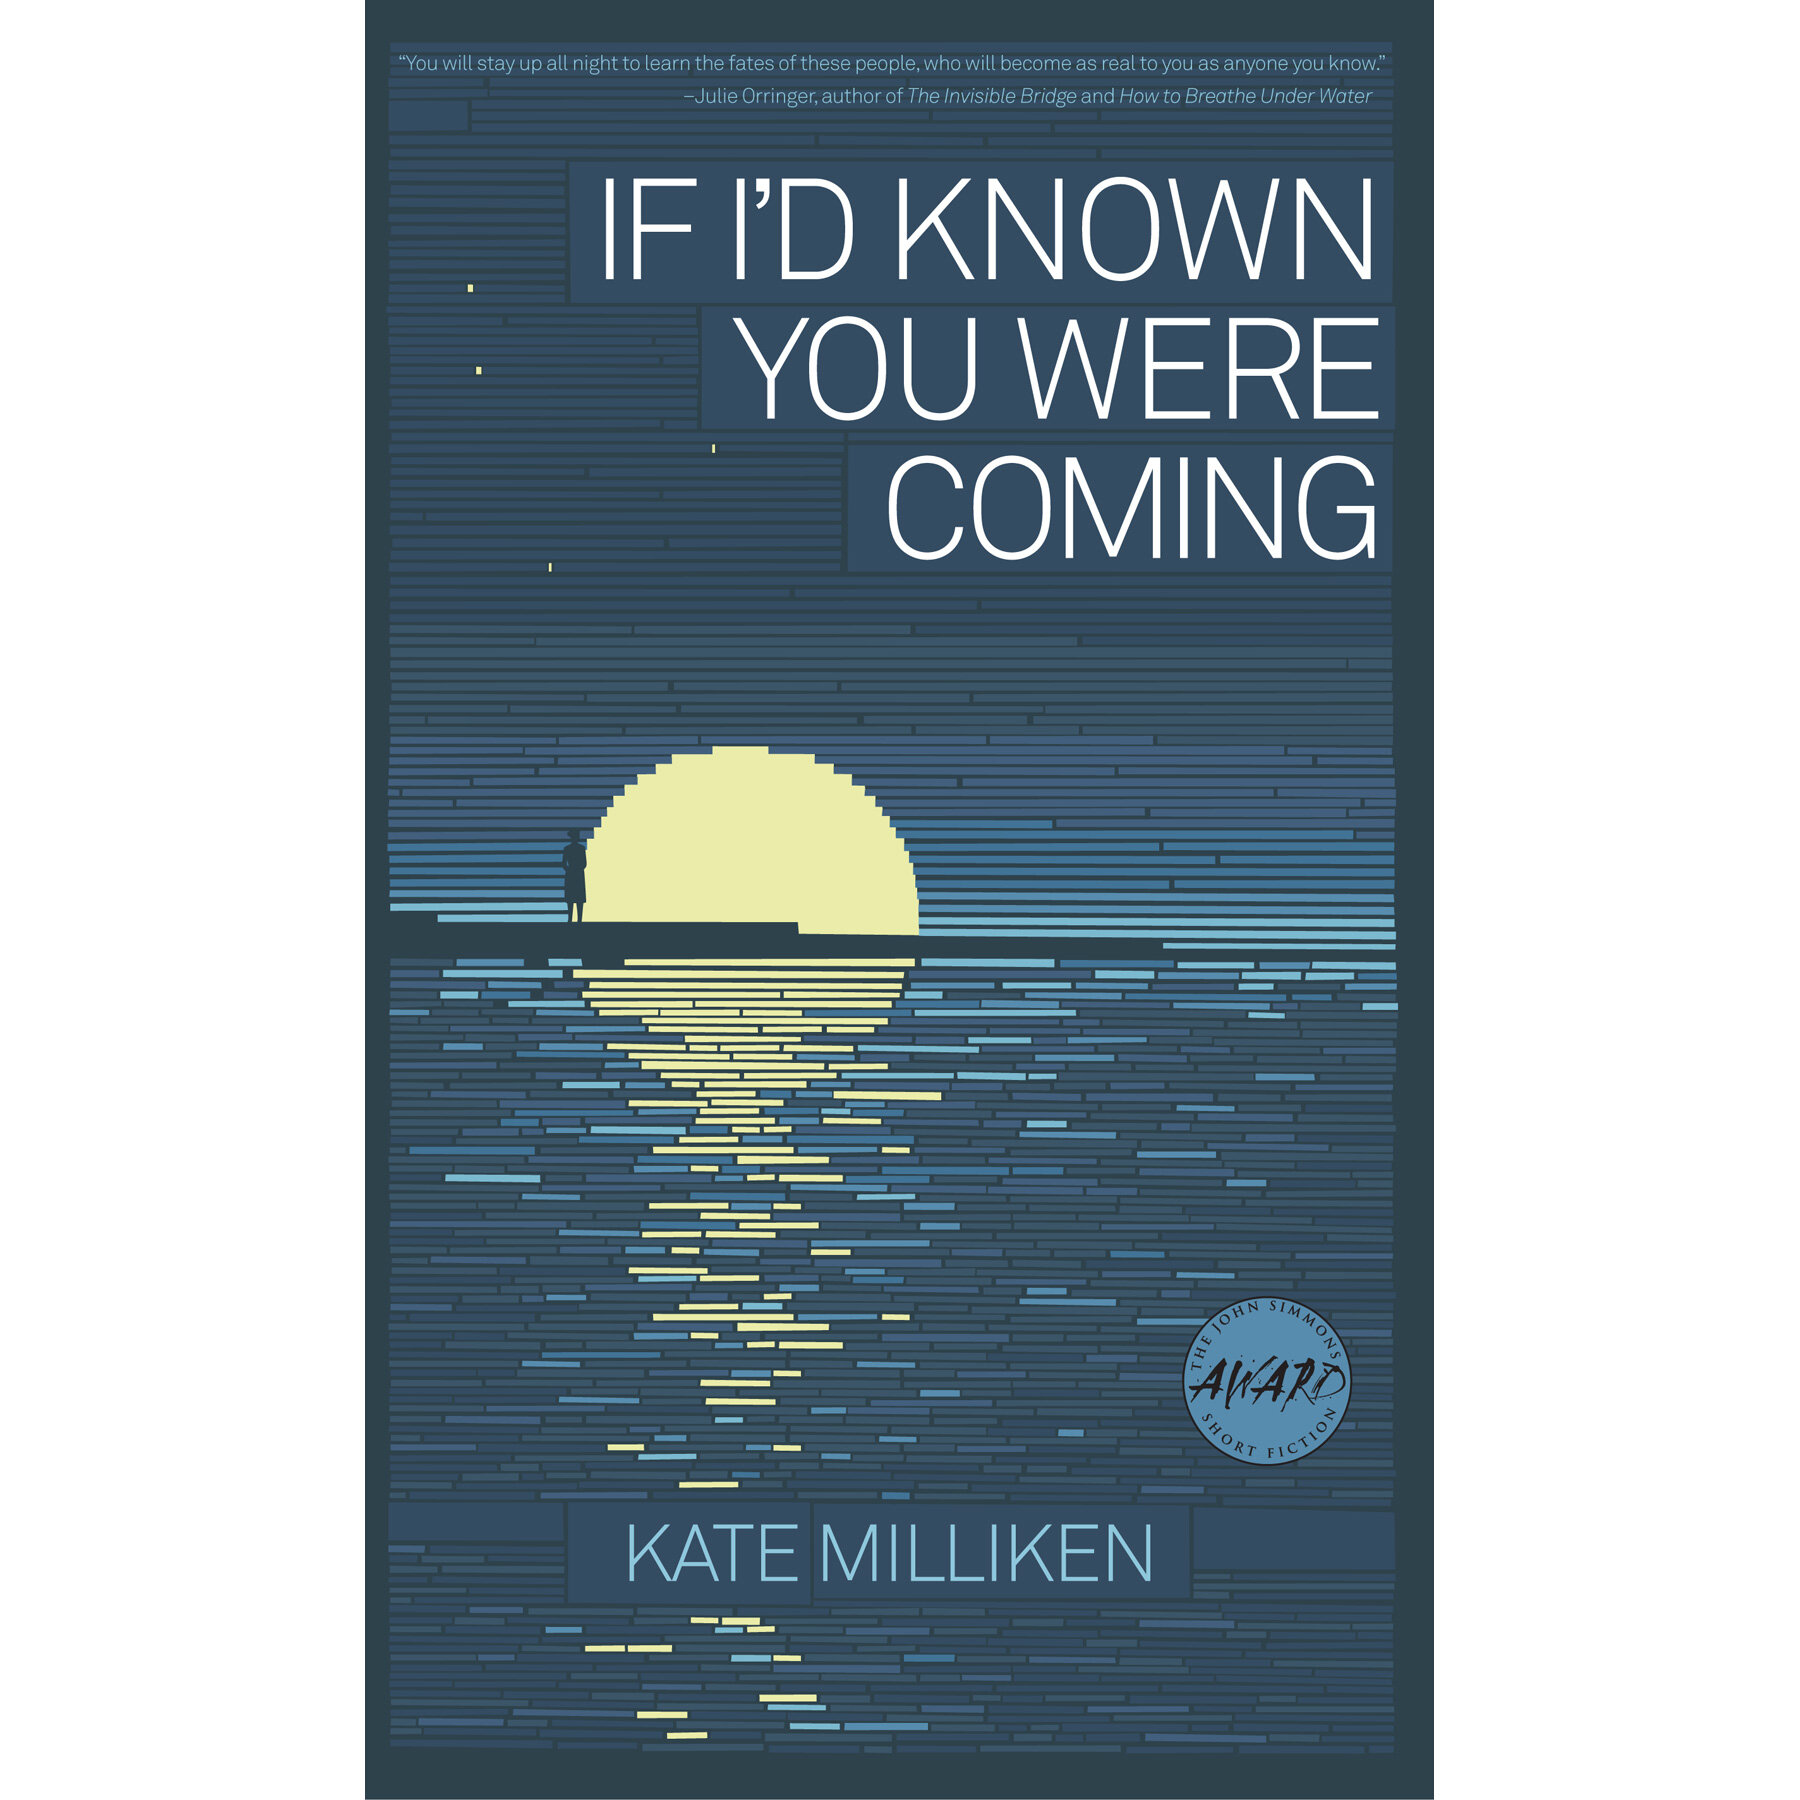 Kate_Miliken_If_I'd_Known_You_Were_Coming_cover_6_6.jpg